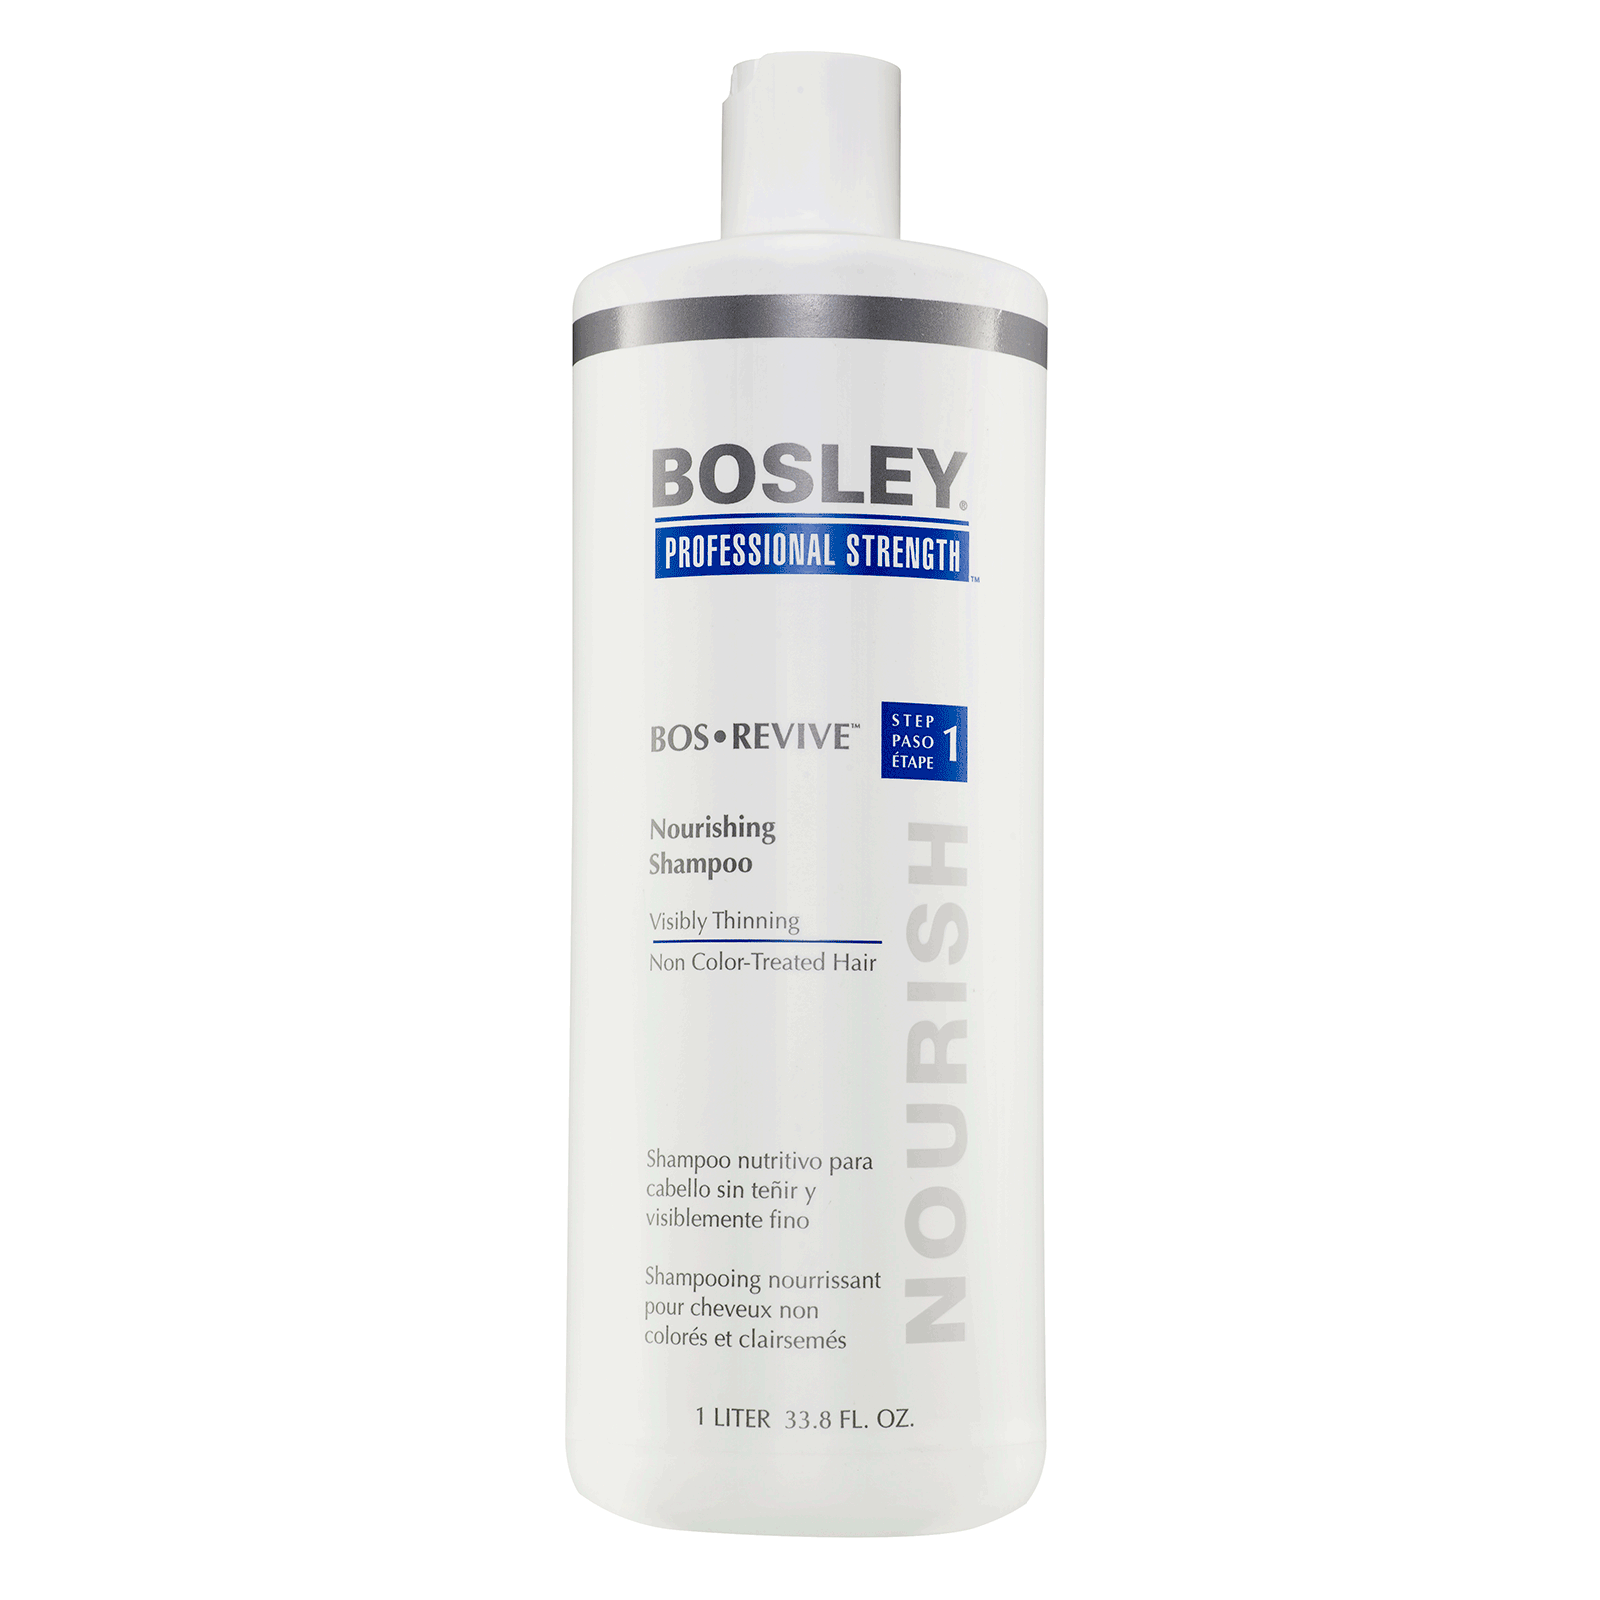 BosRevive Nourishing Shampoo for Non Color-Treated Hair